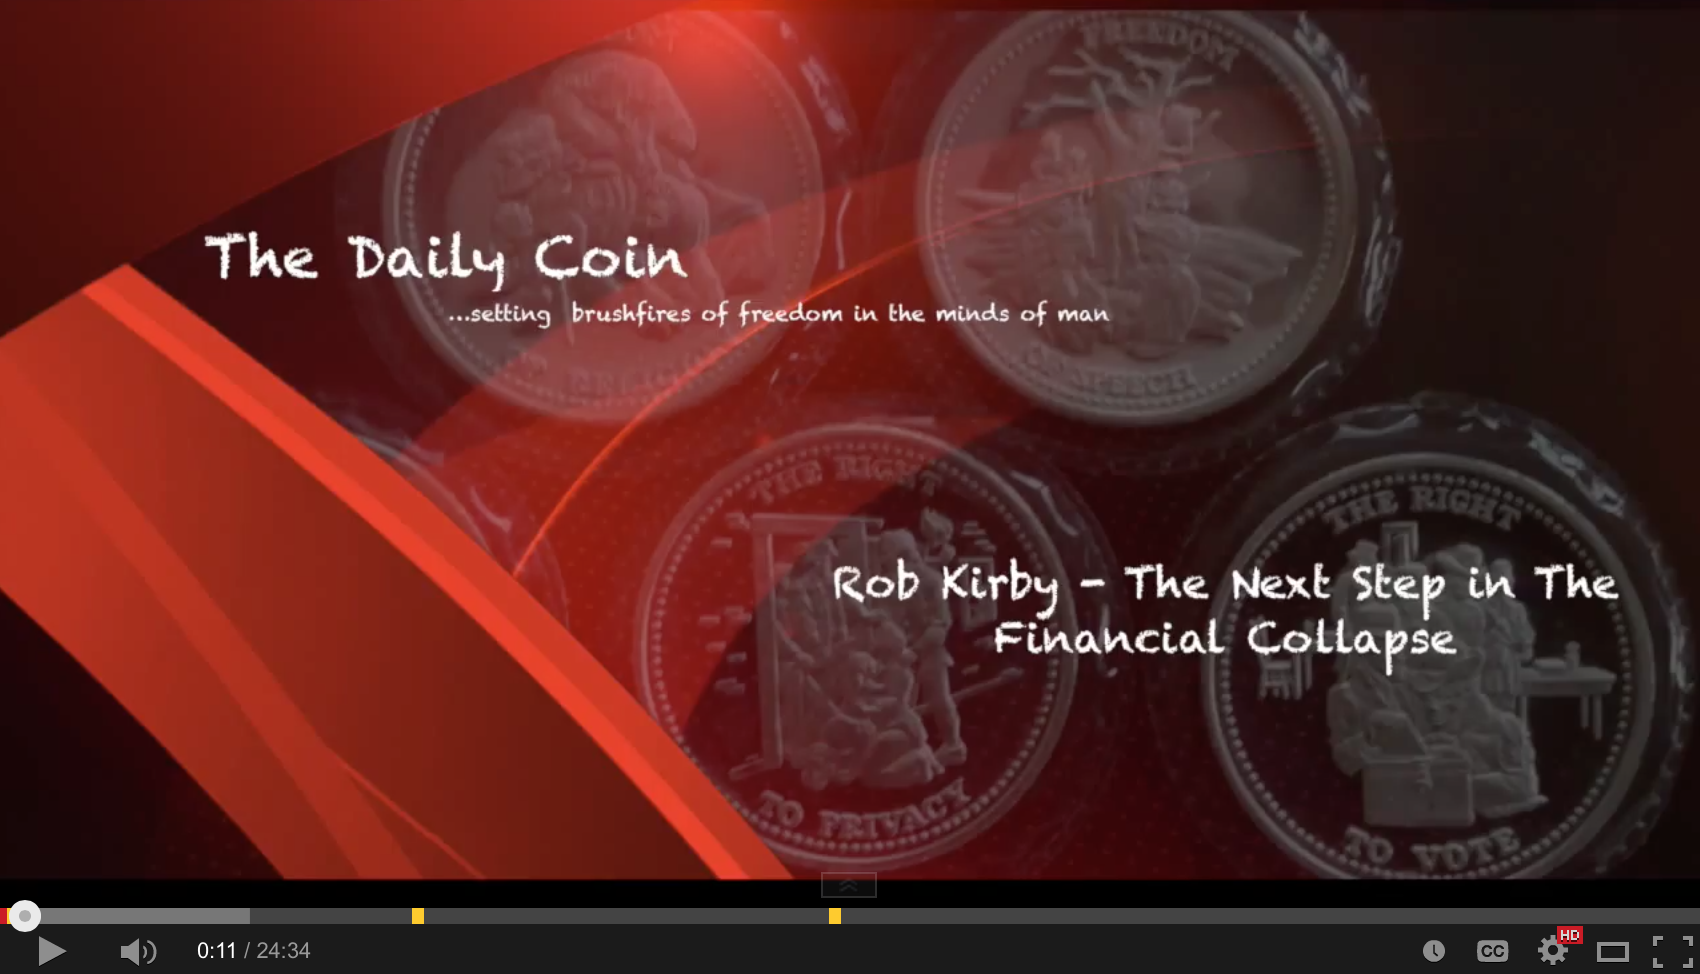 Rob Kirby - The Next Step in The Financial Collapse Pt III